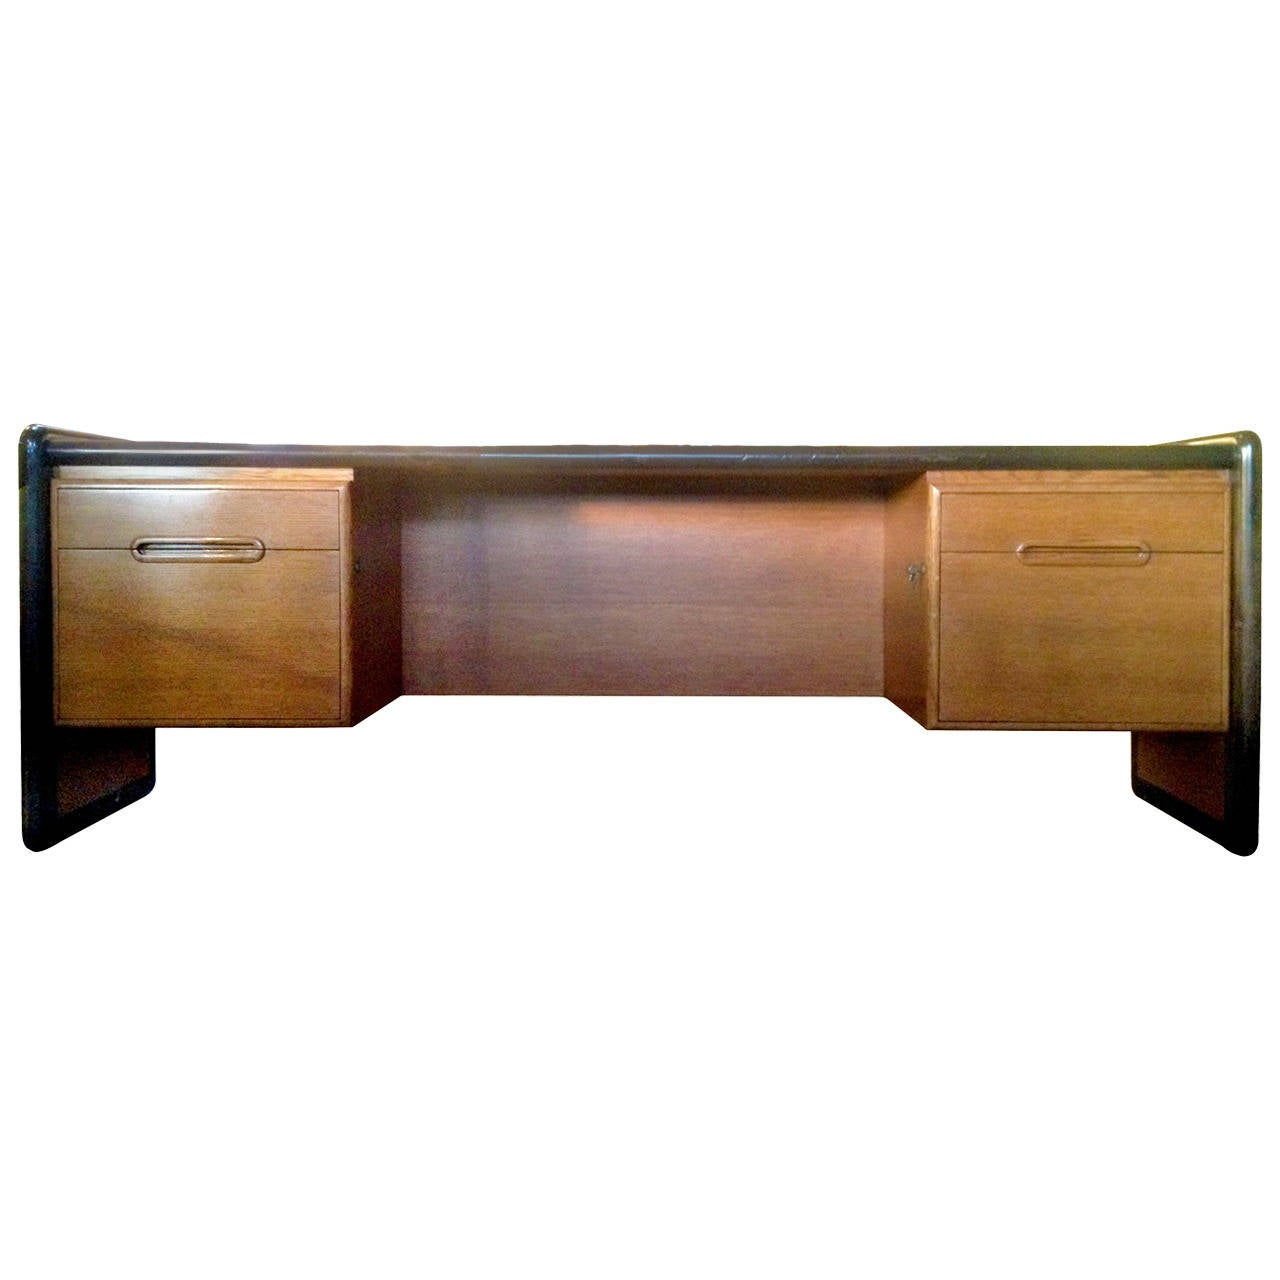 Two tone monteverdi young desk / console for sale at 1stdibs